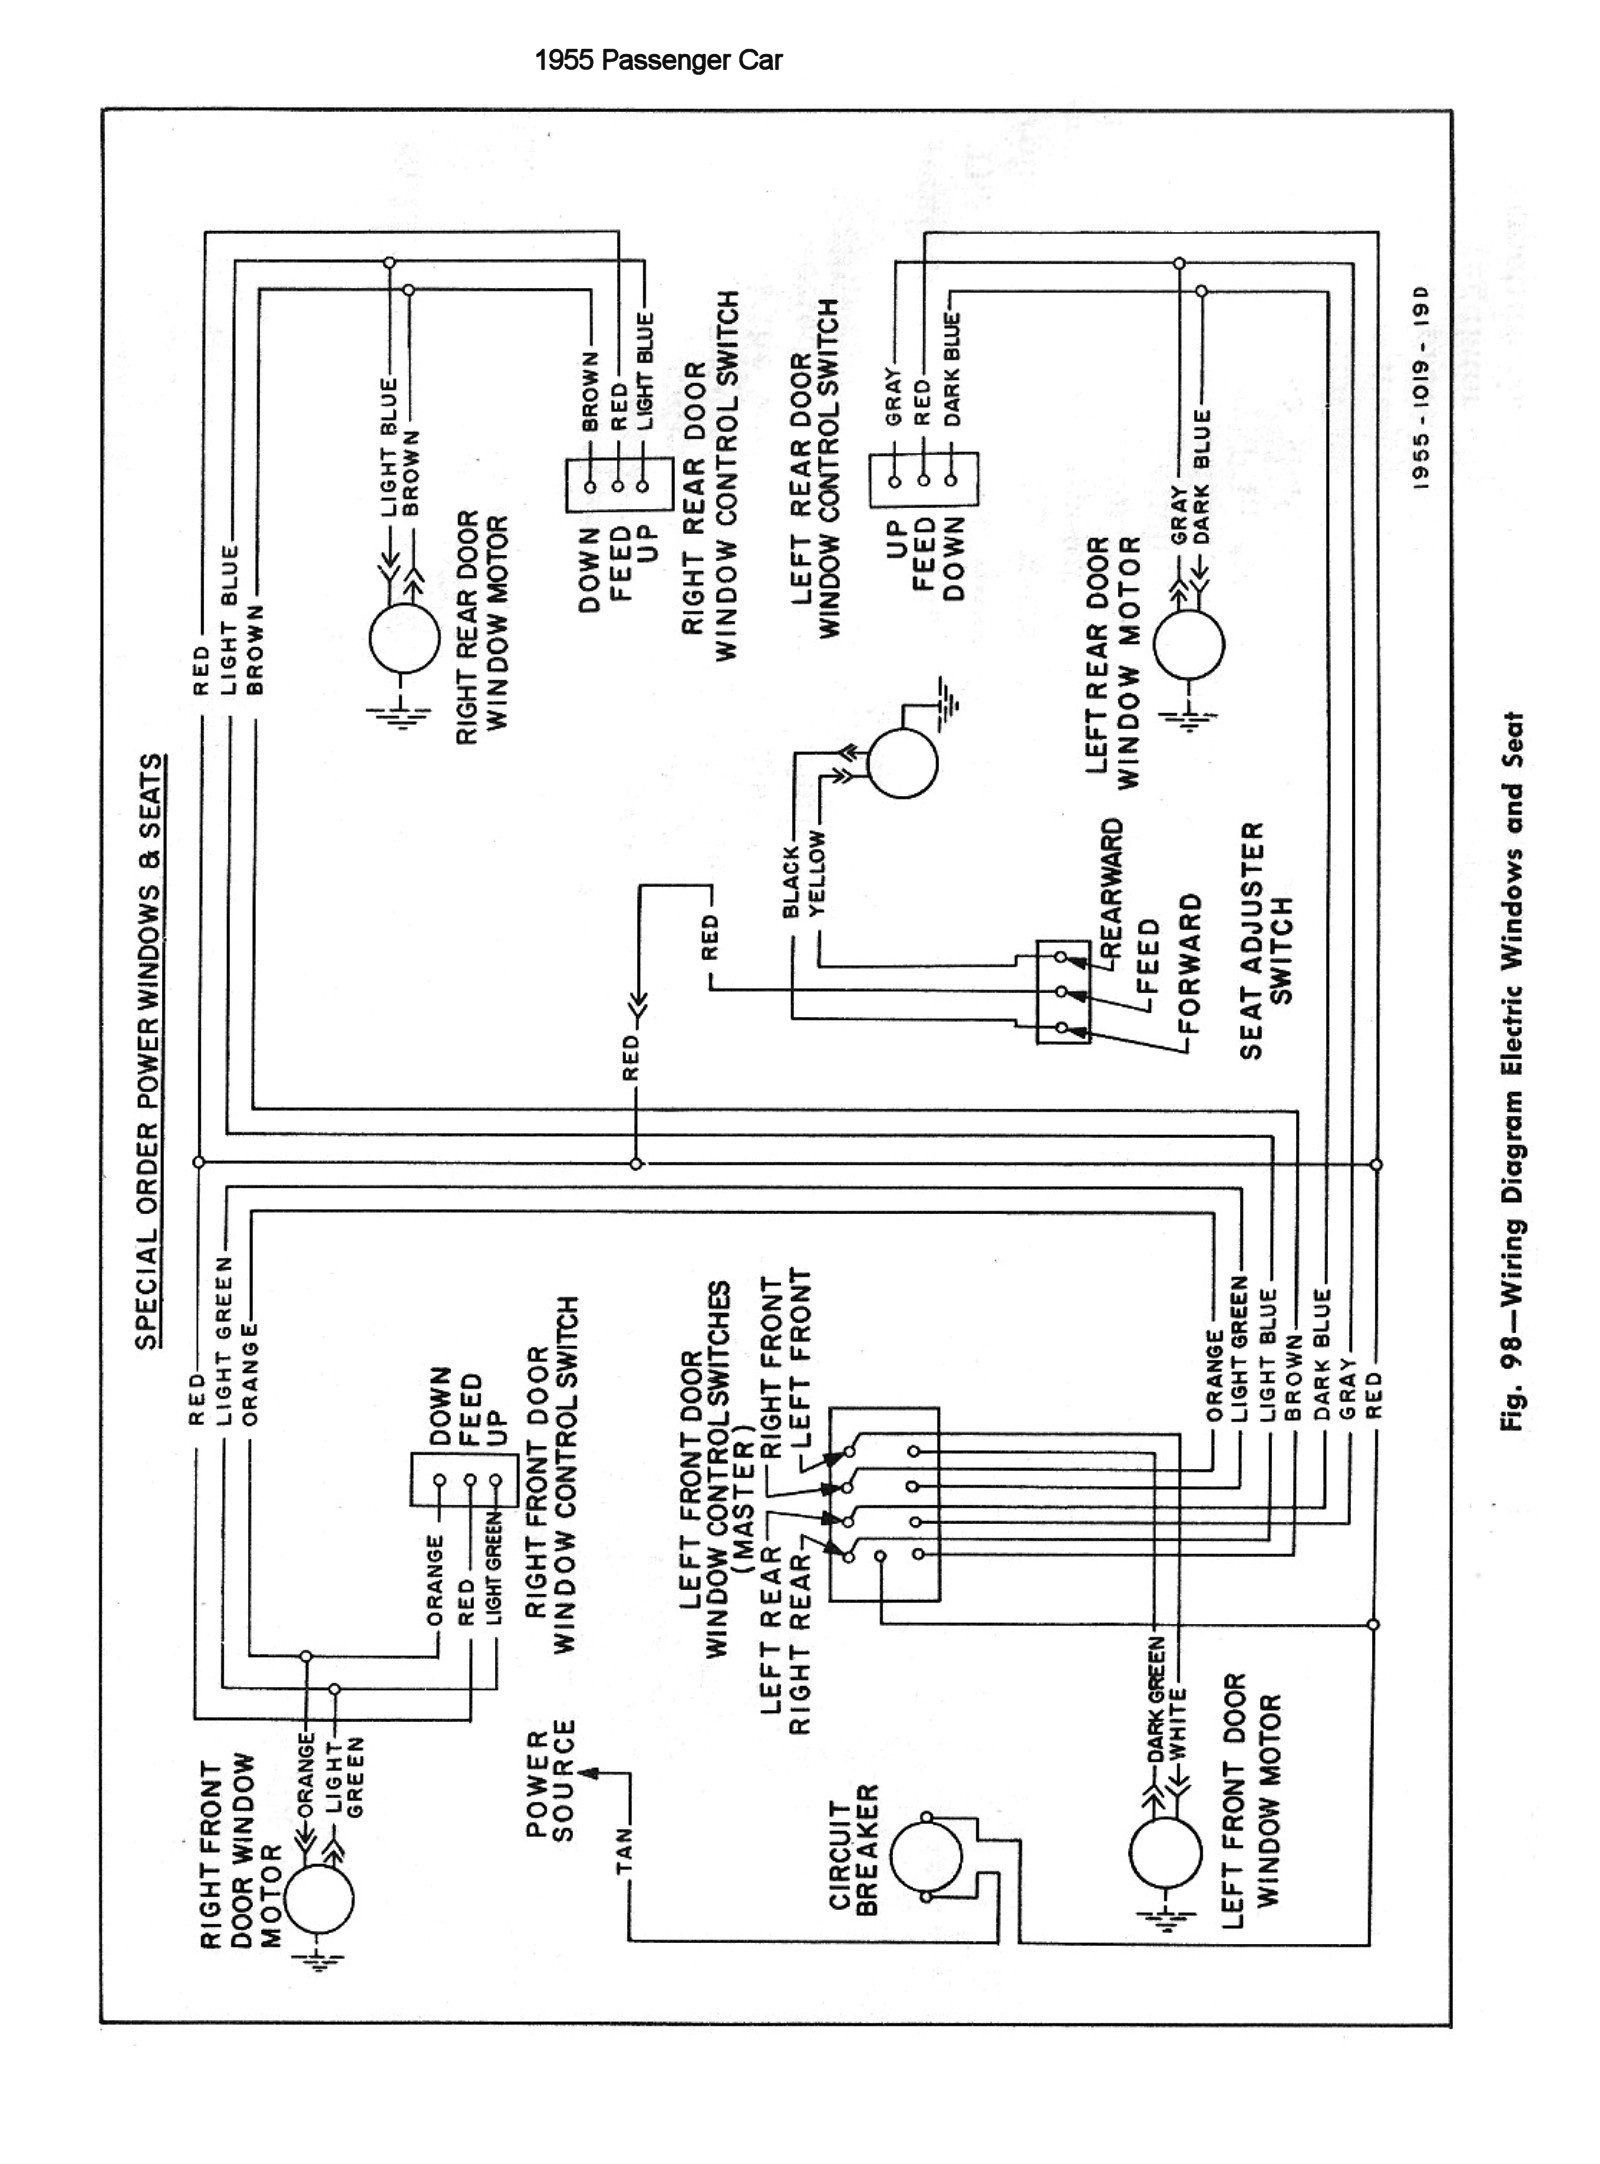 1955 chevy turn signal wiring diagram wiringdiagram org rh pinterest com 55 chevy truck turn signal [ 1600 x 2164 Pixel ]